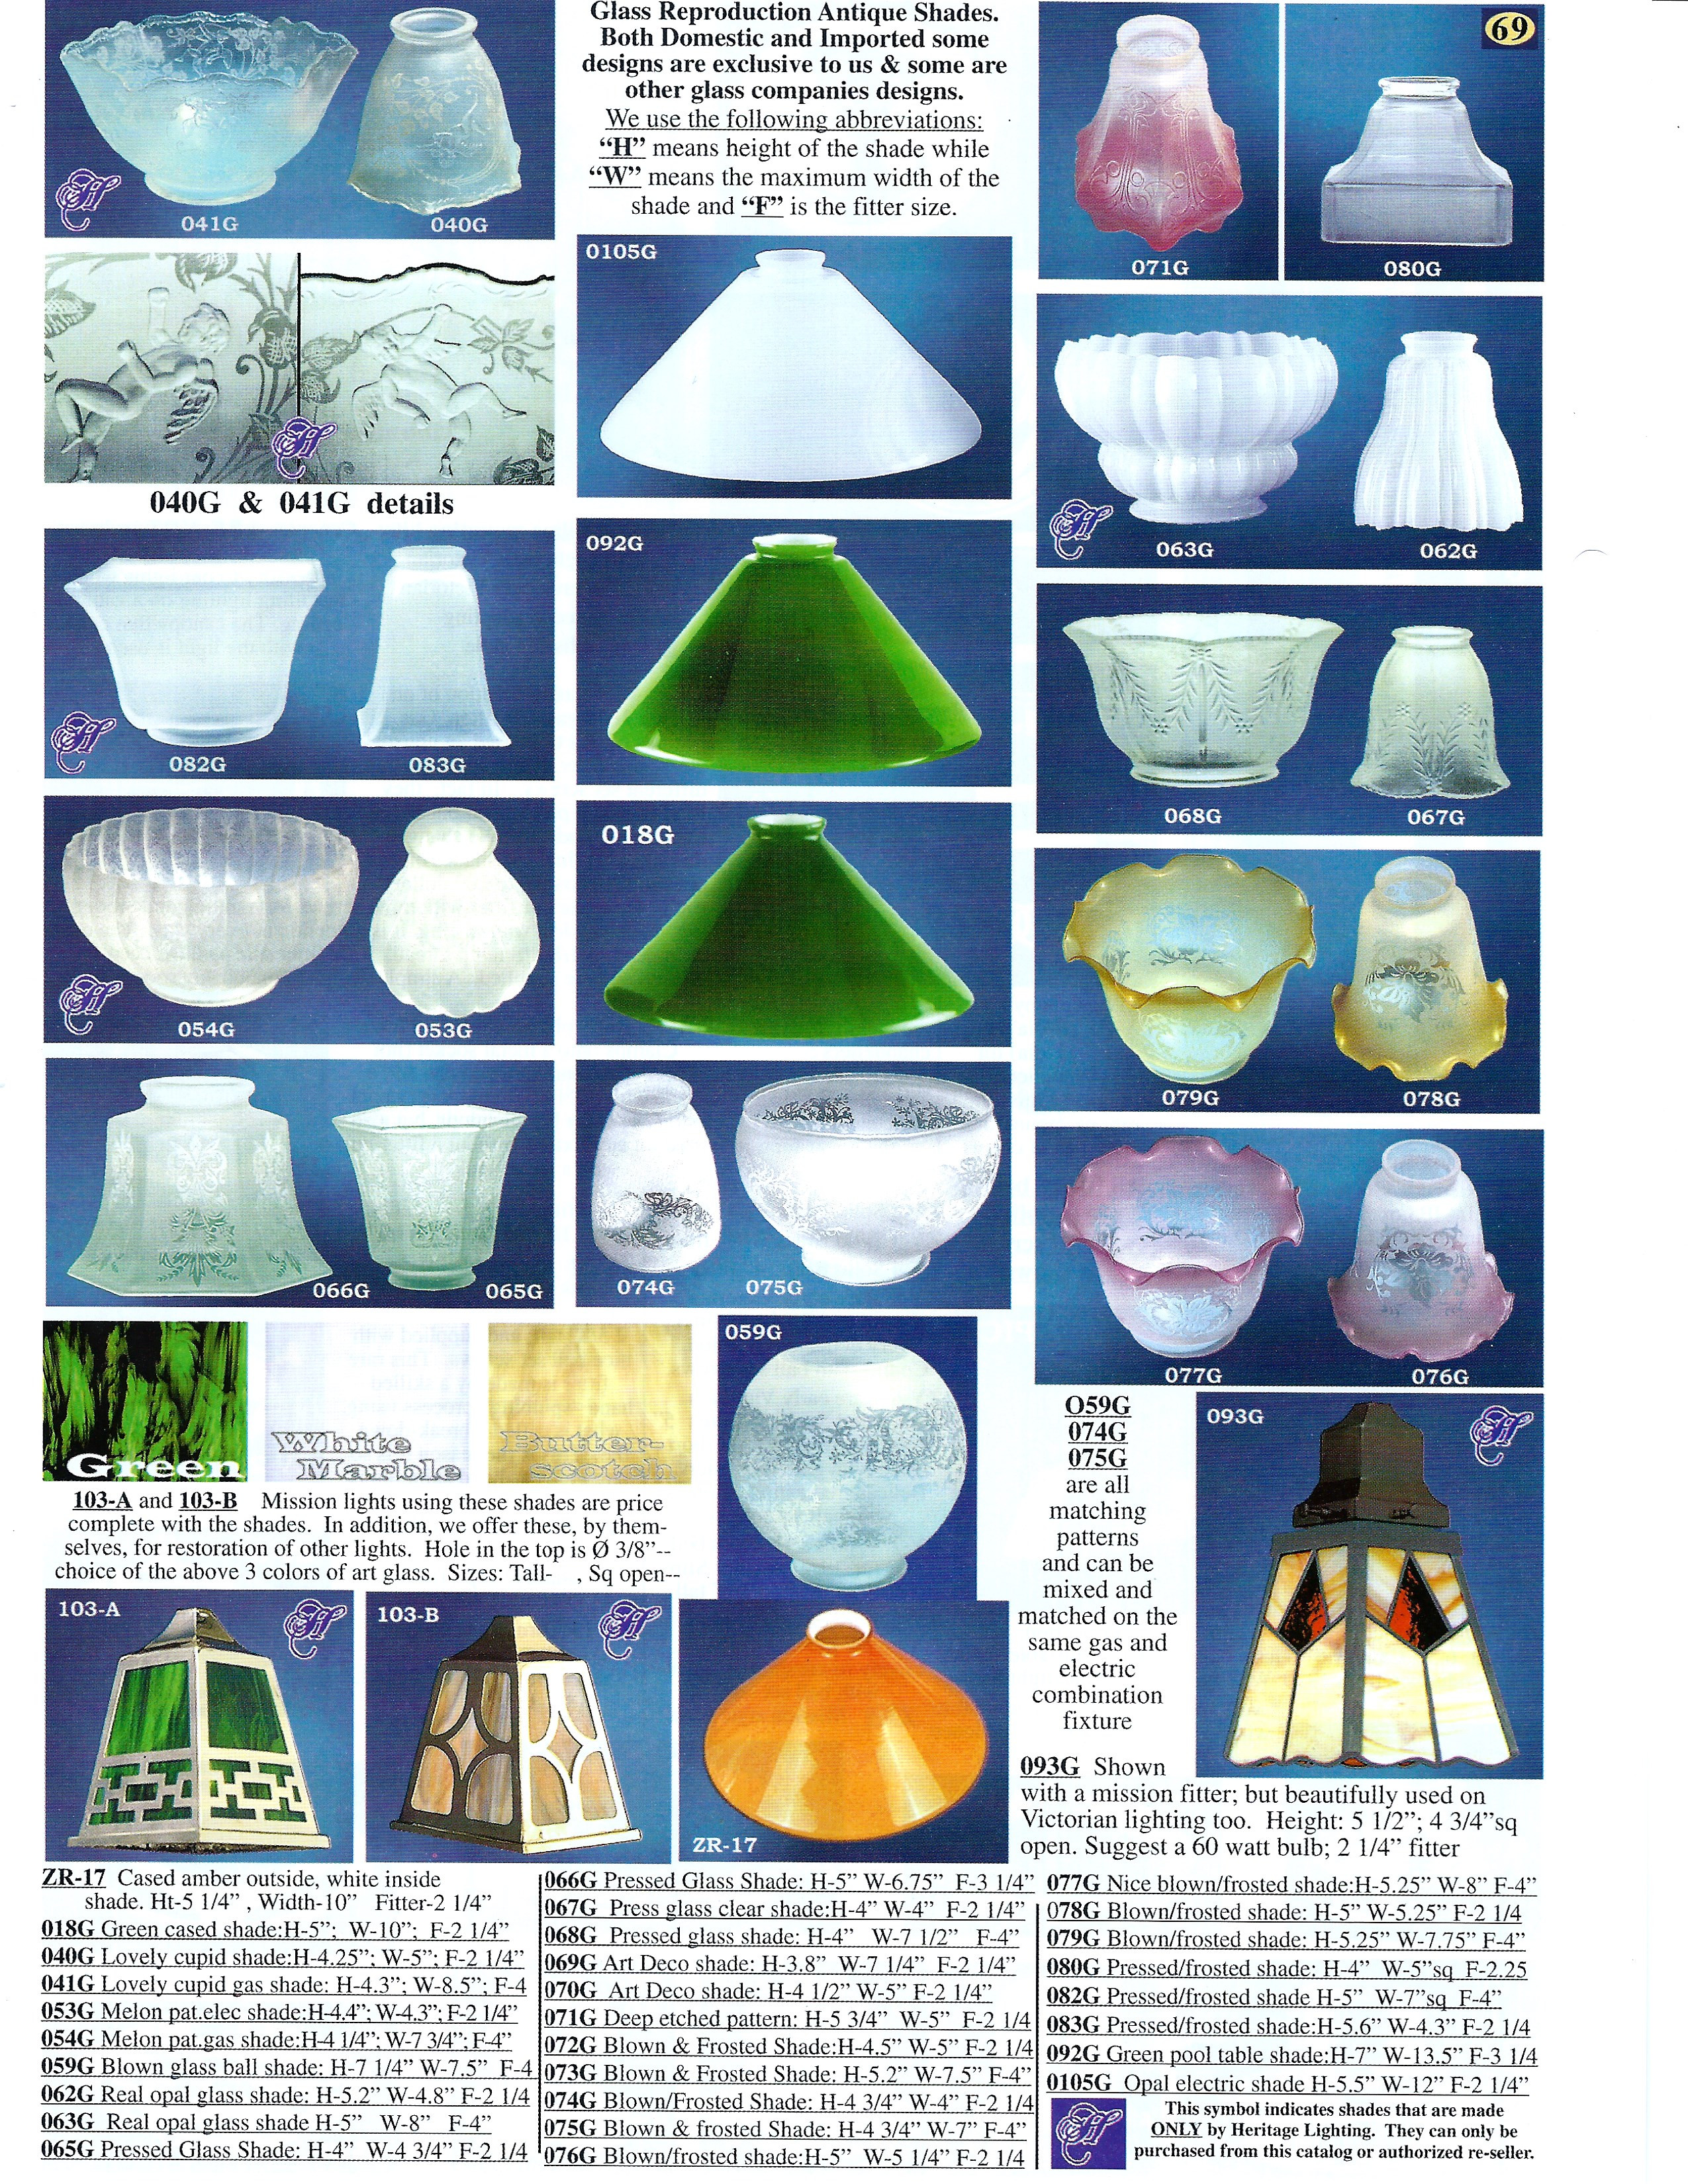 Catalog page 95